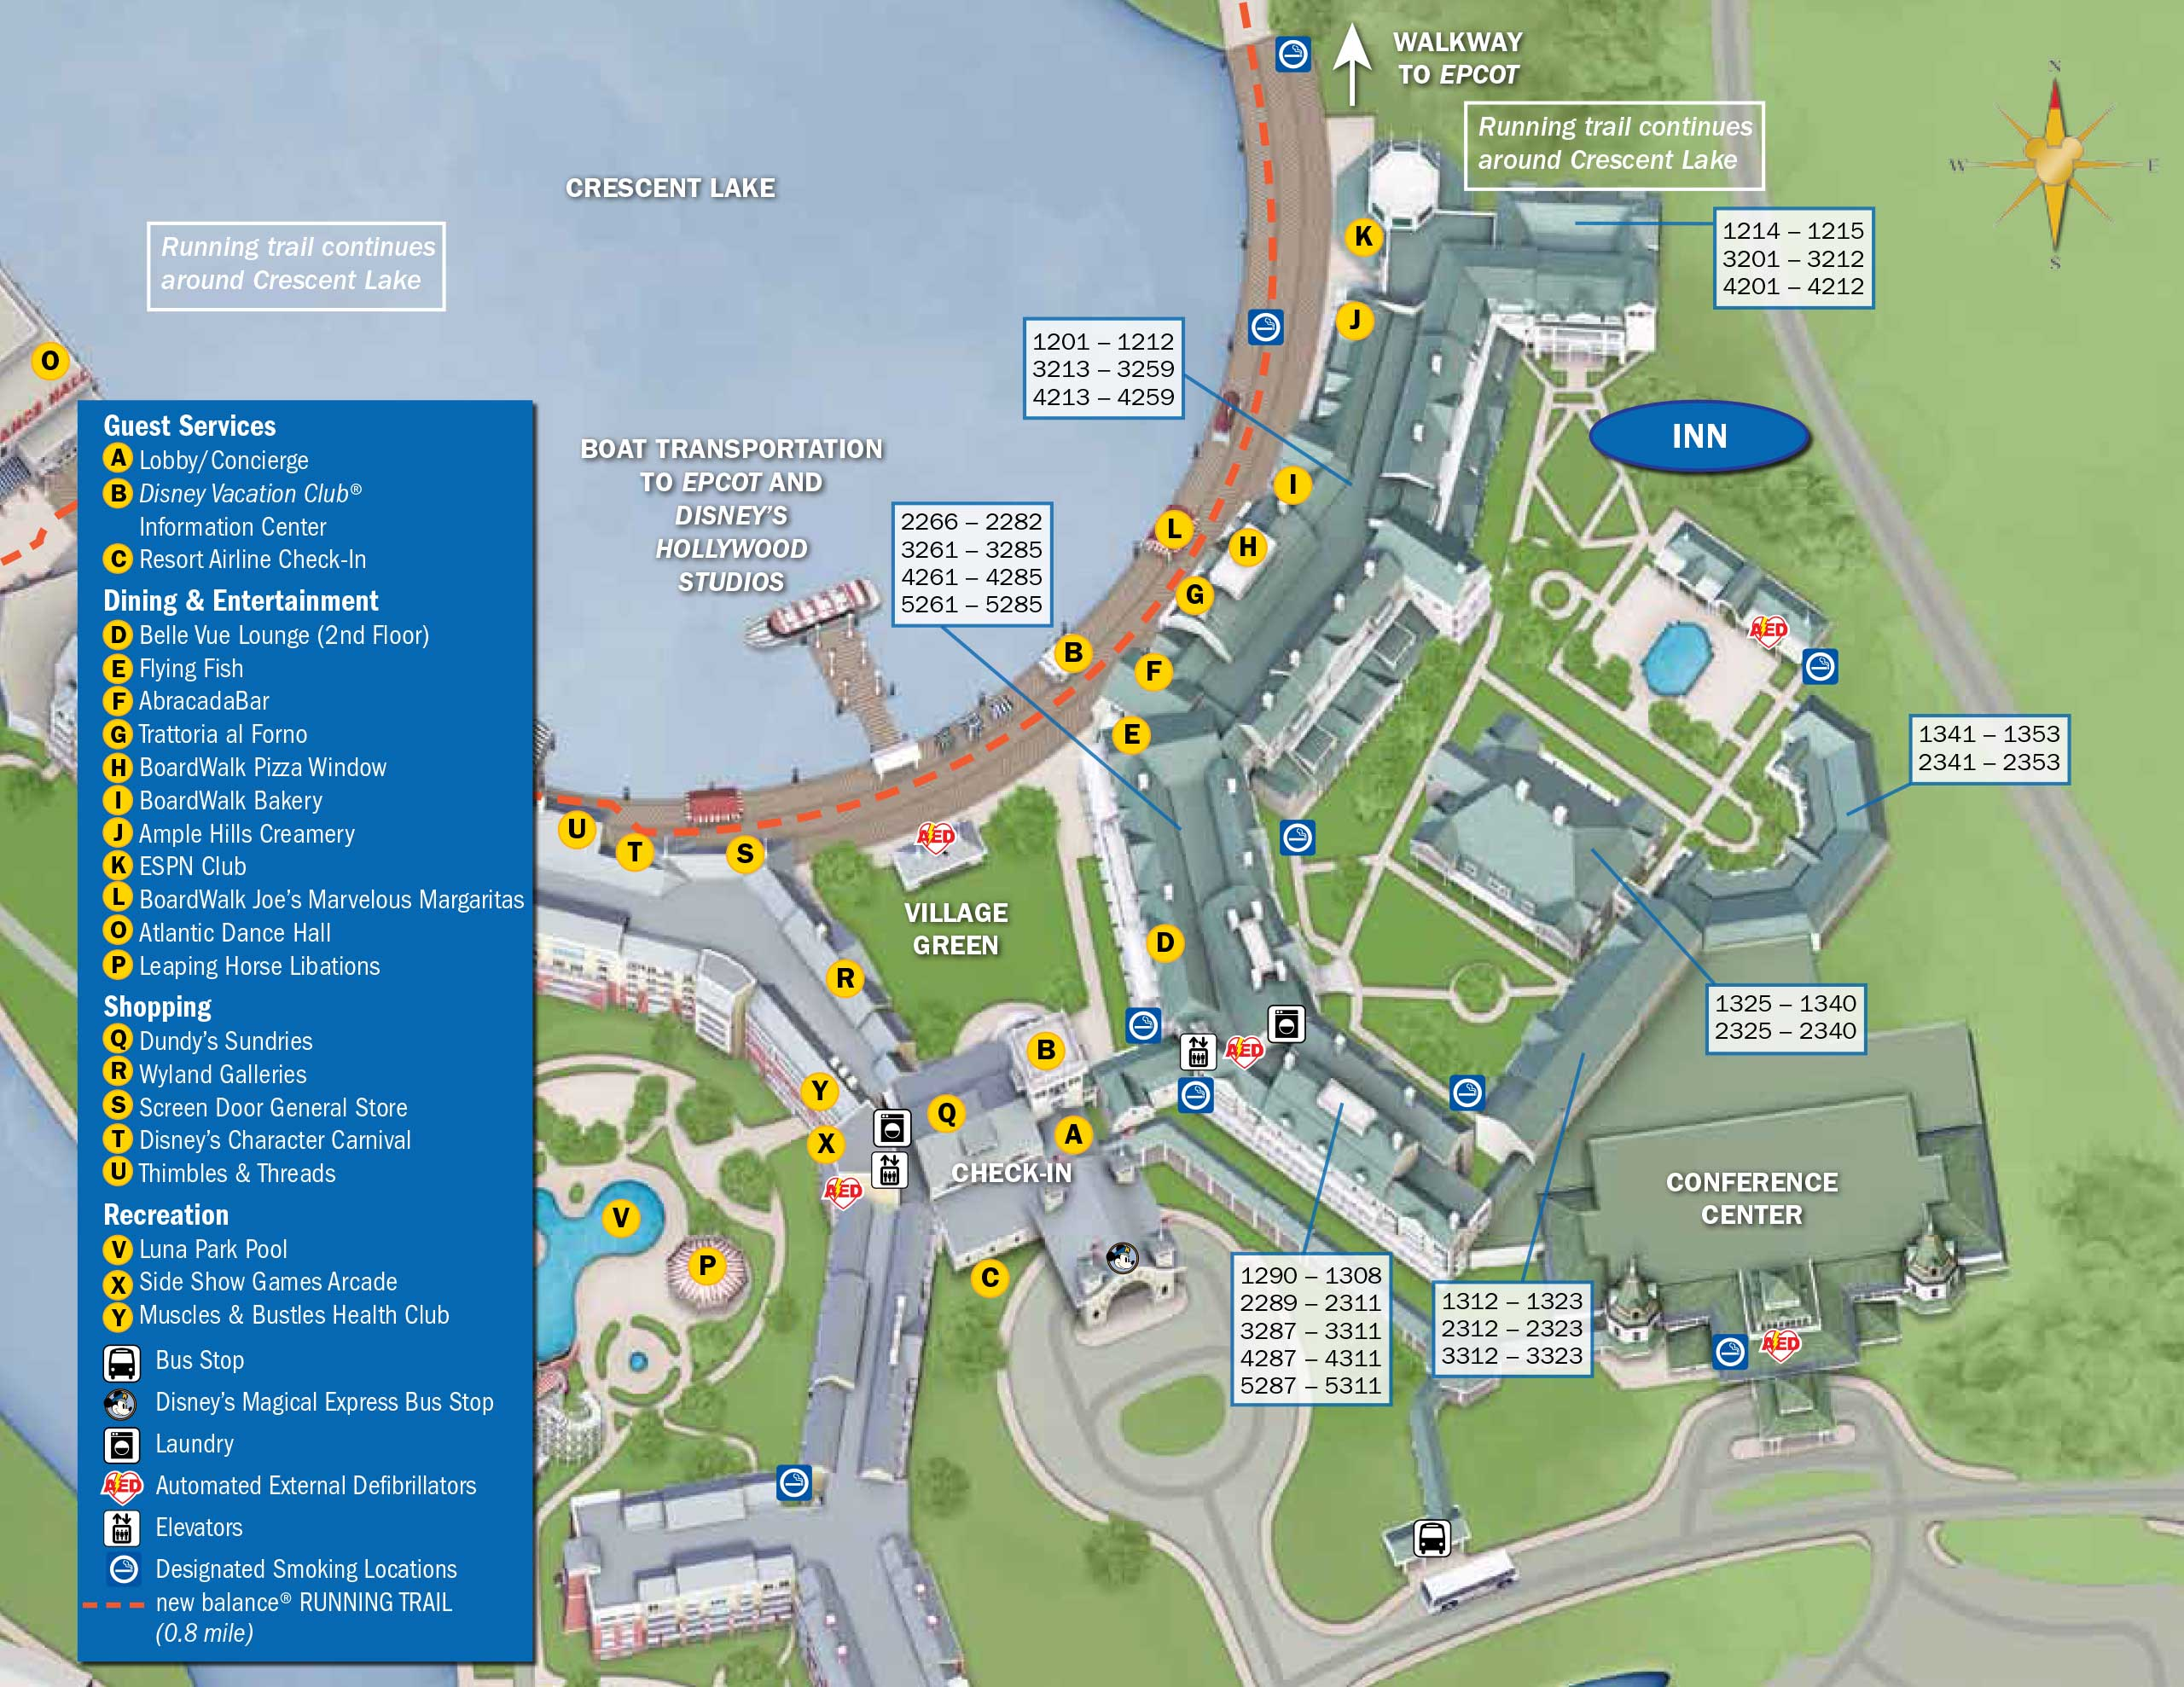 April 2017 Walt Disney World Resort Hotel Maps - Photo 19 of 33